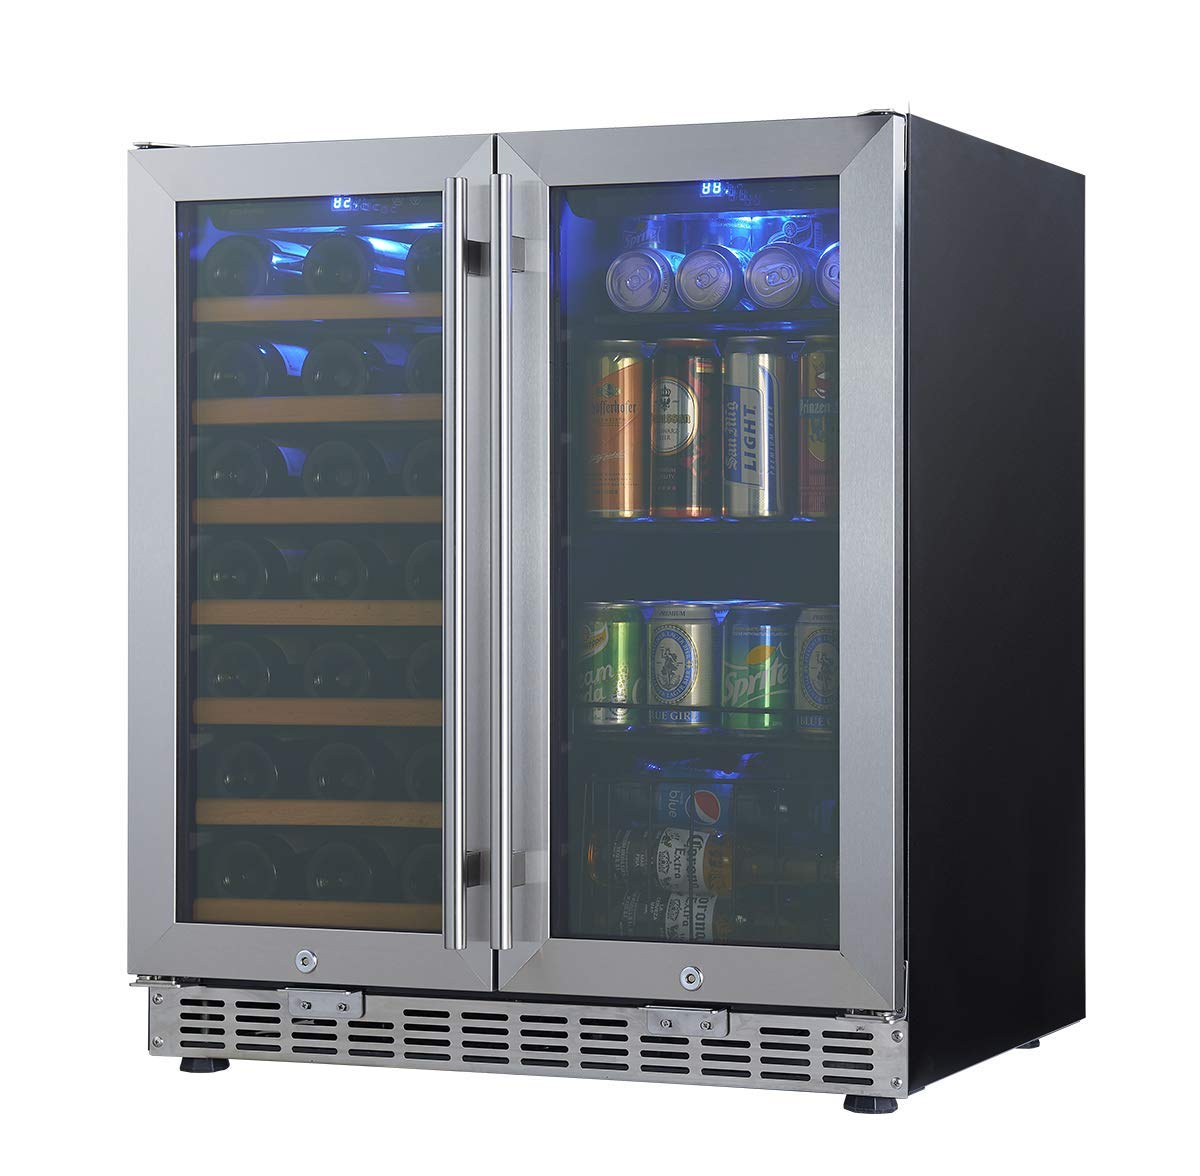 30'' Wine and Beer Cooler Combo | 30 Inch Wide Under Counter Beverage and Wine Refrigerator combination, built in or freestanding by KingsBottle (Image #1)